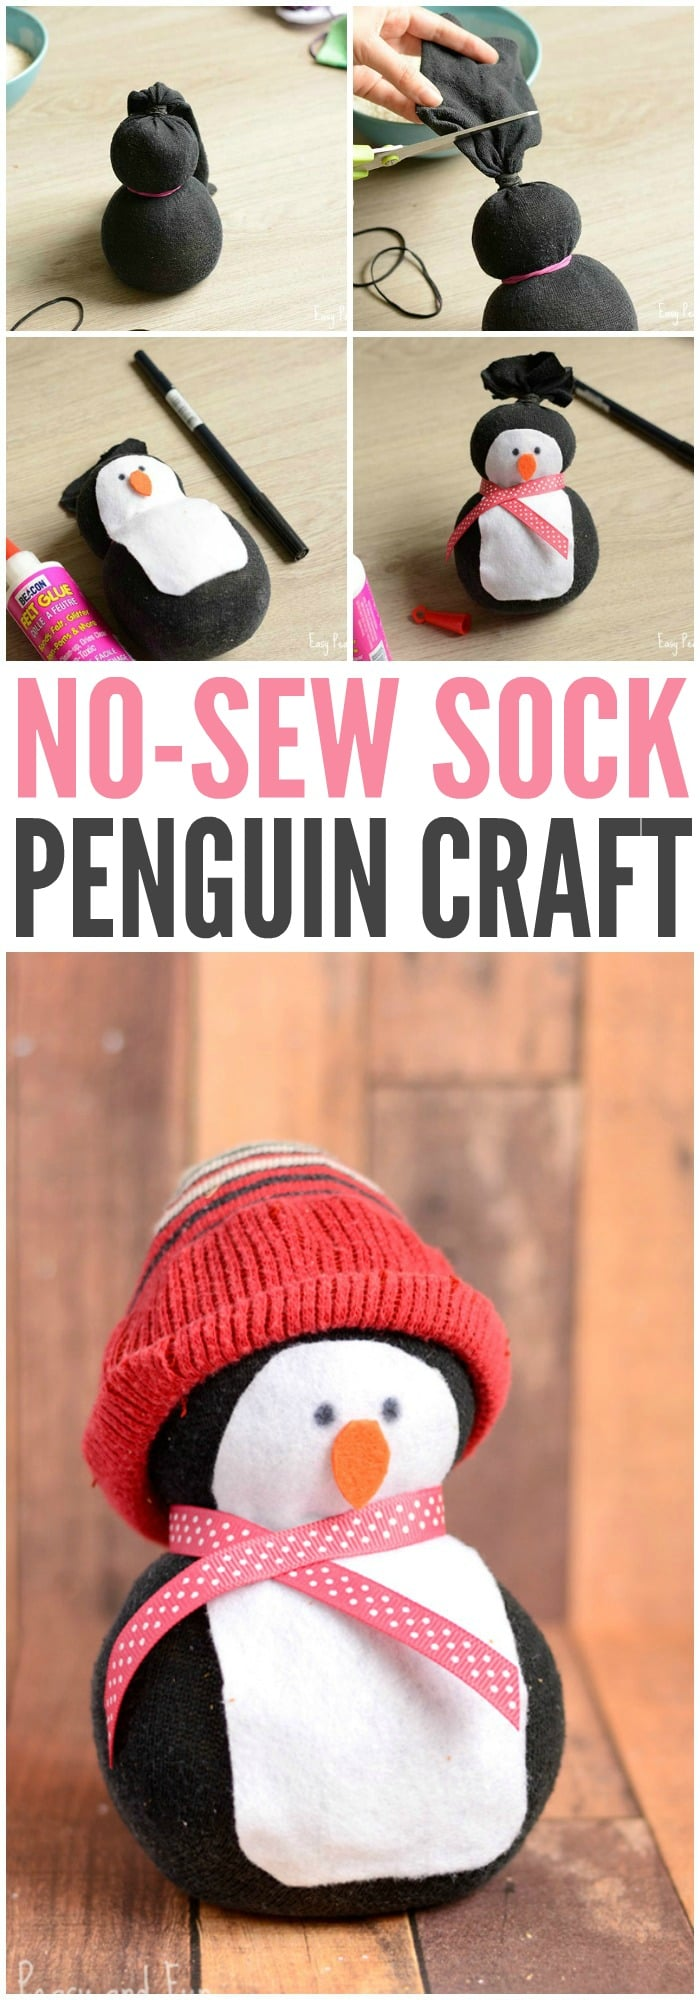 Adorable No-Sew Sock Penguin Craft